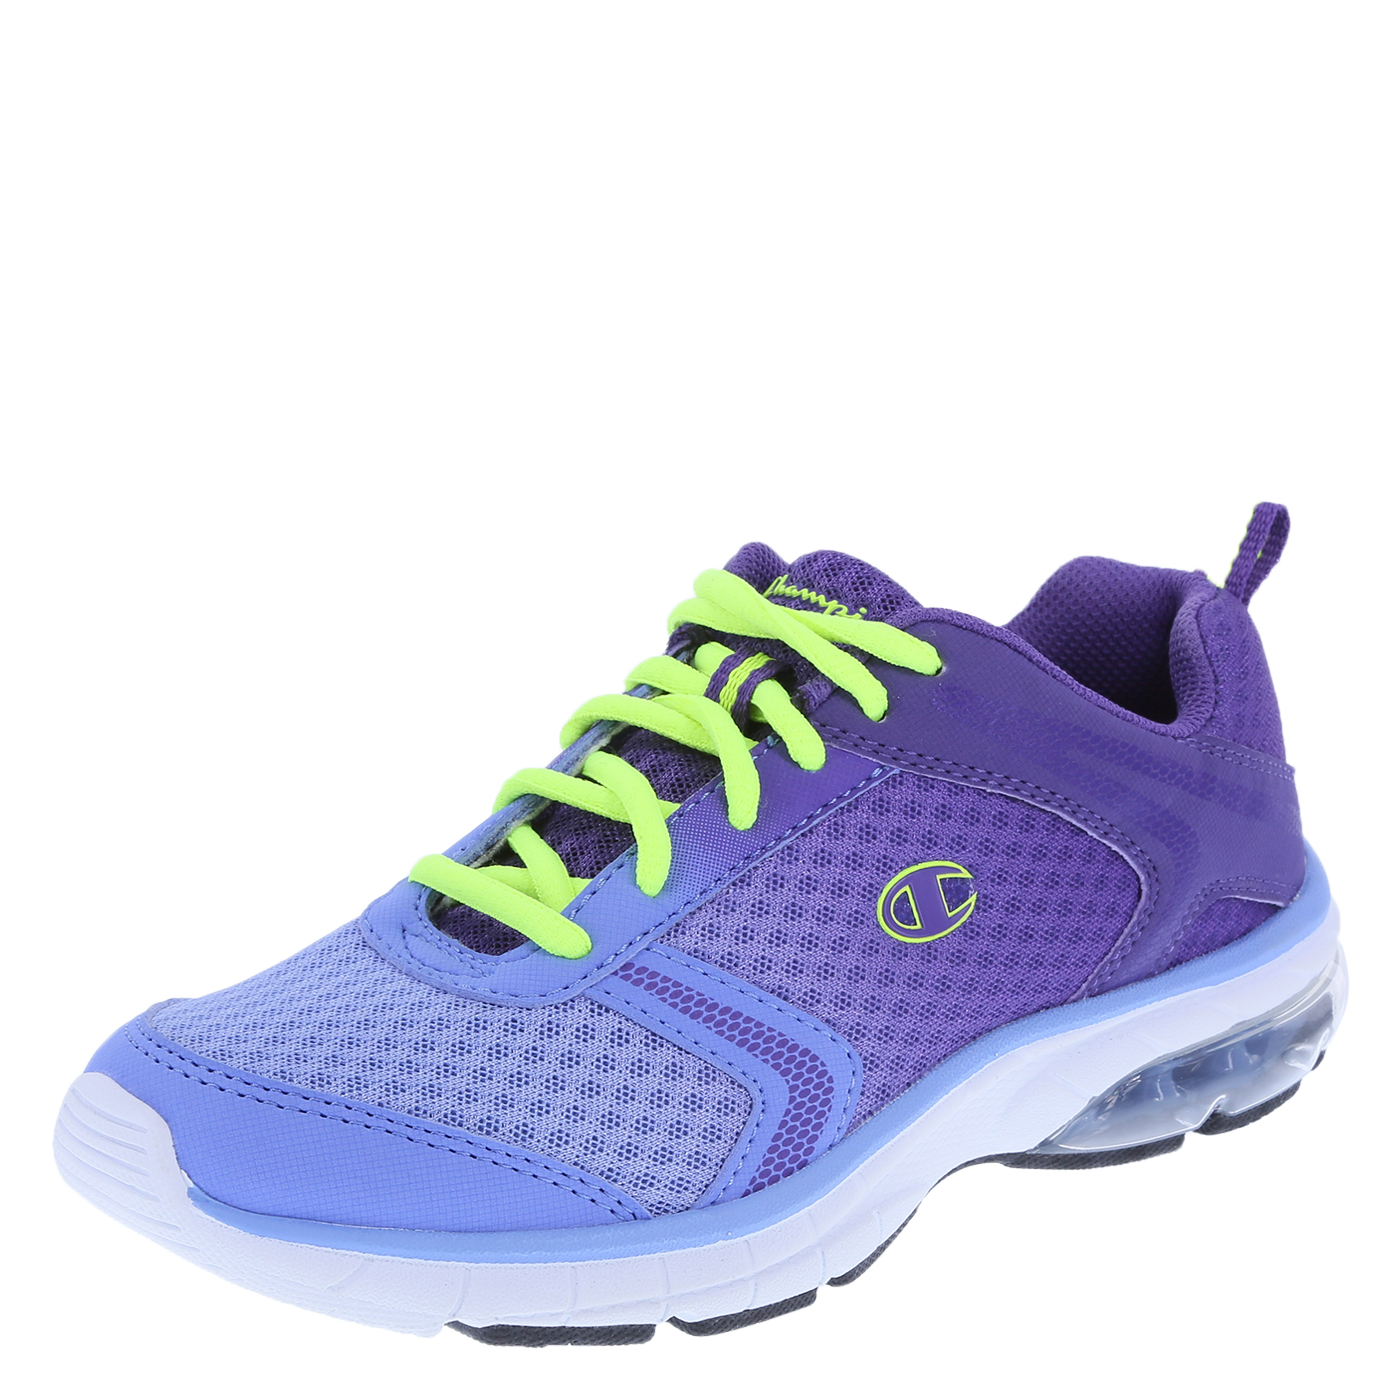 new products d1db5 d8067 champion-launch-window-womens-running-shoes